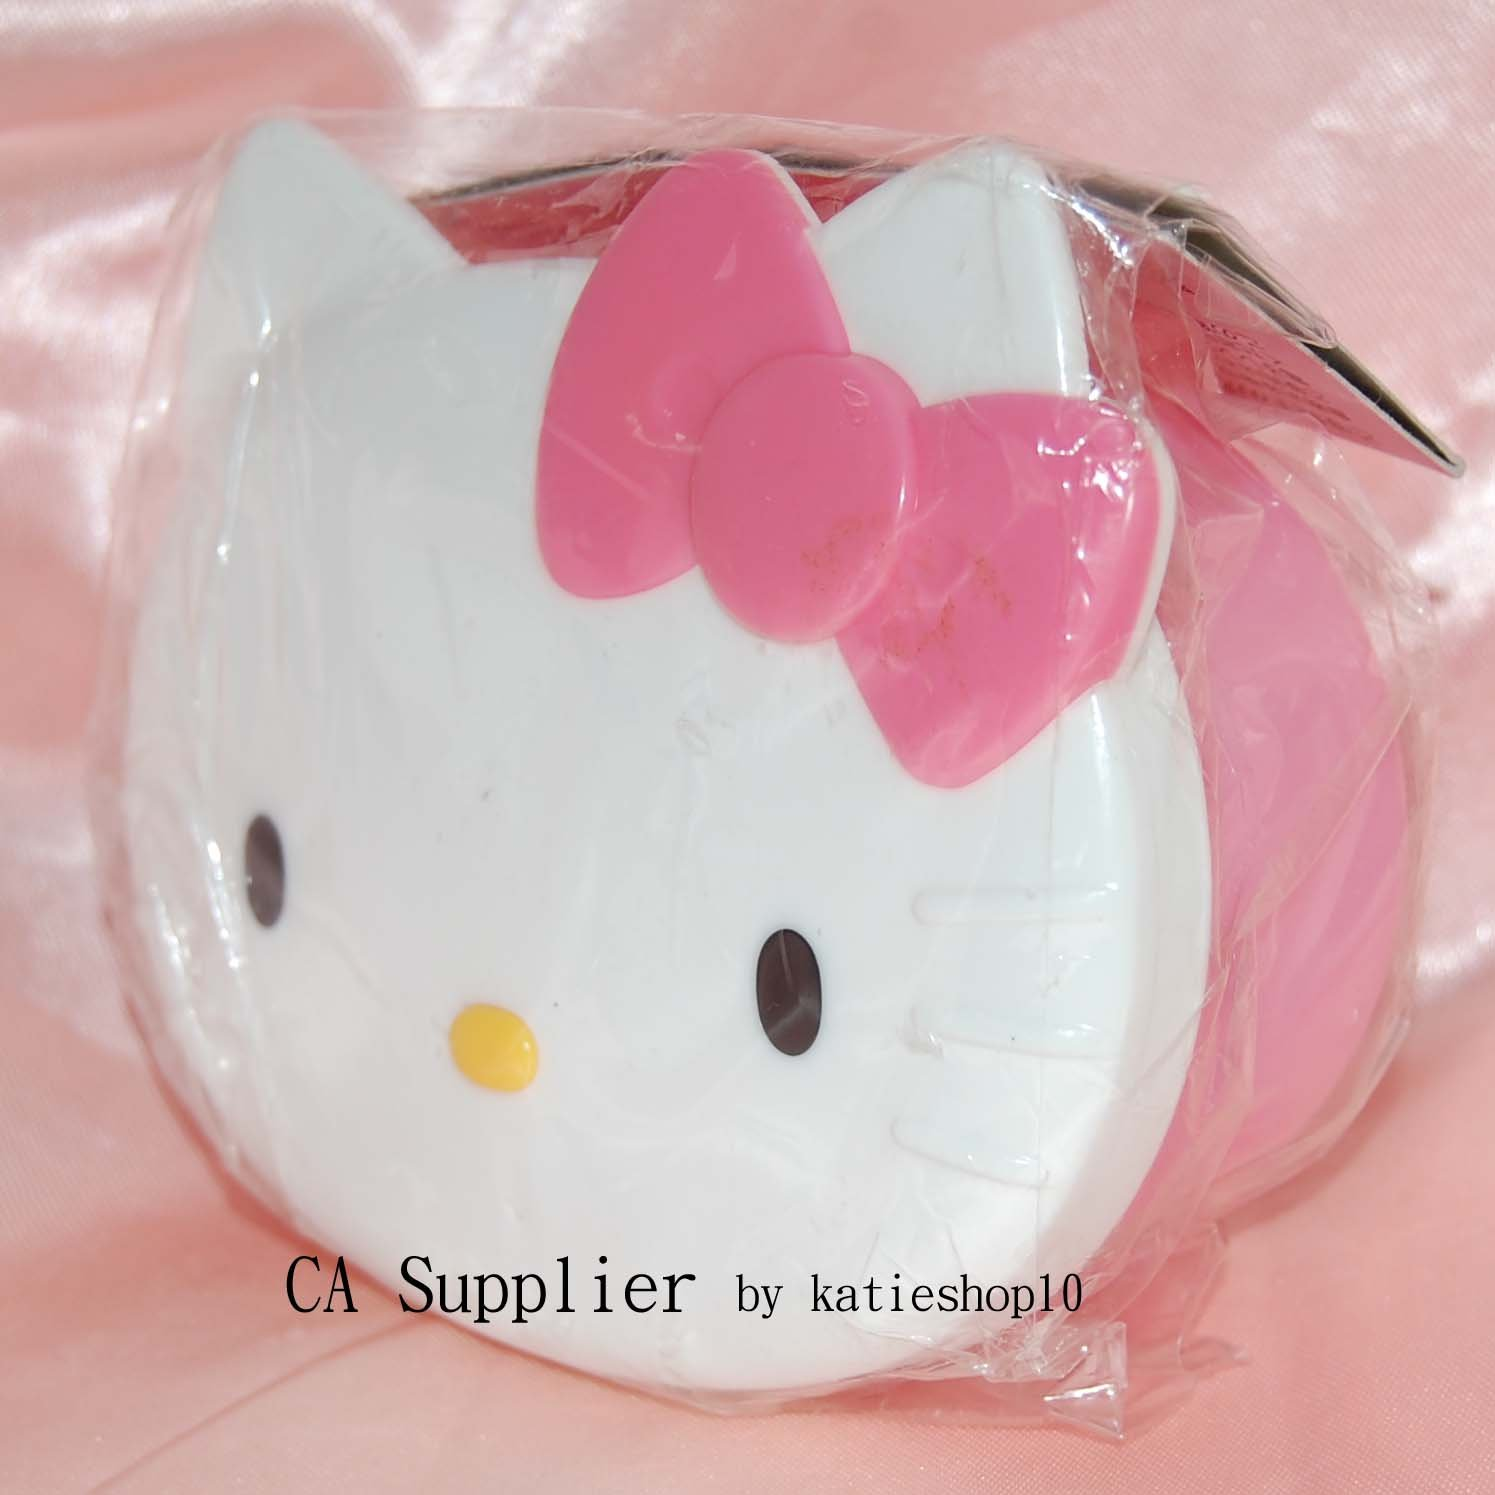 2002 Sanrio Hello Kitty Head Plastic PINK Box Container Made in Japan 180 ml